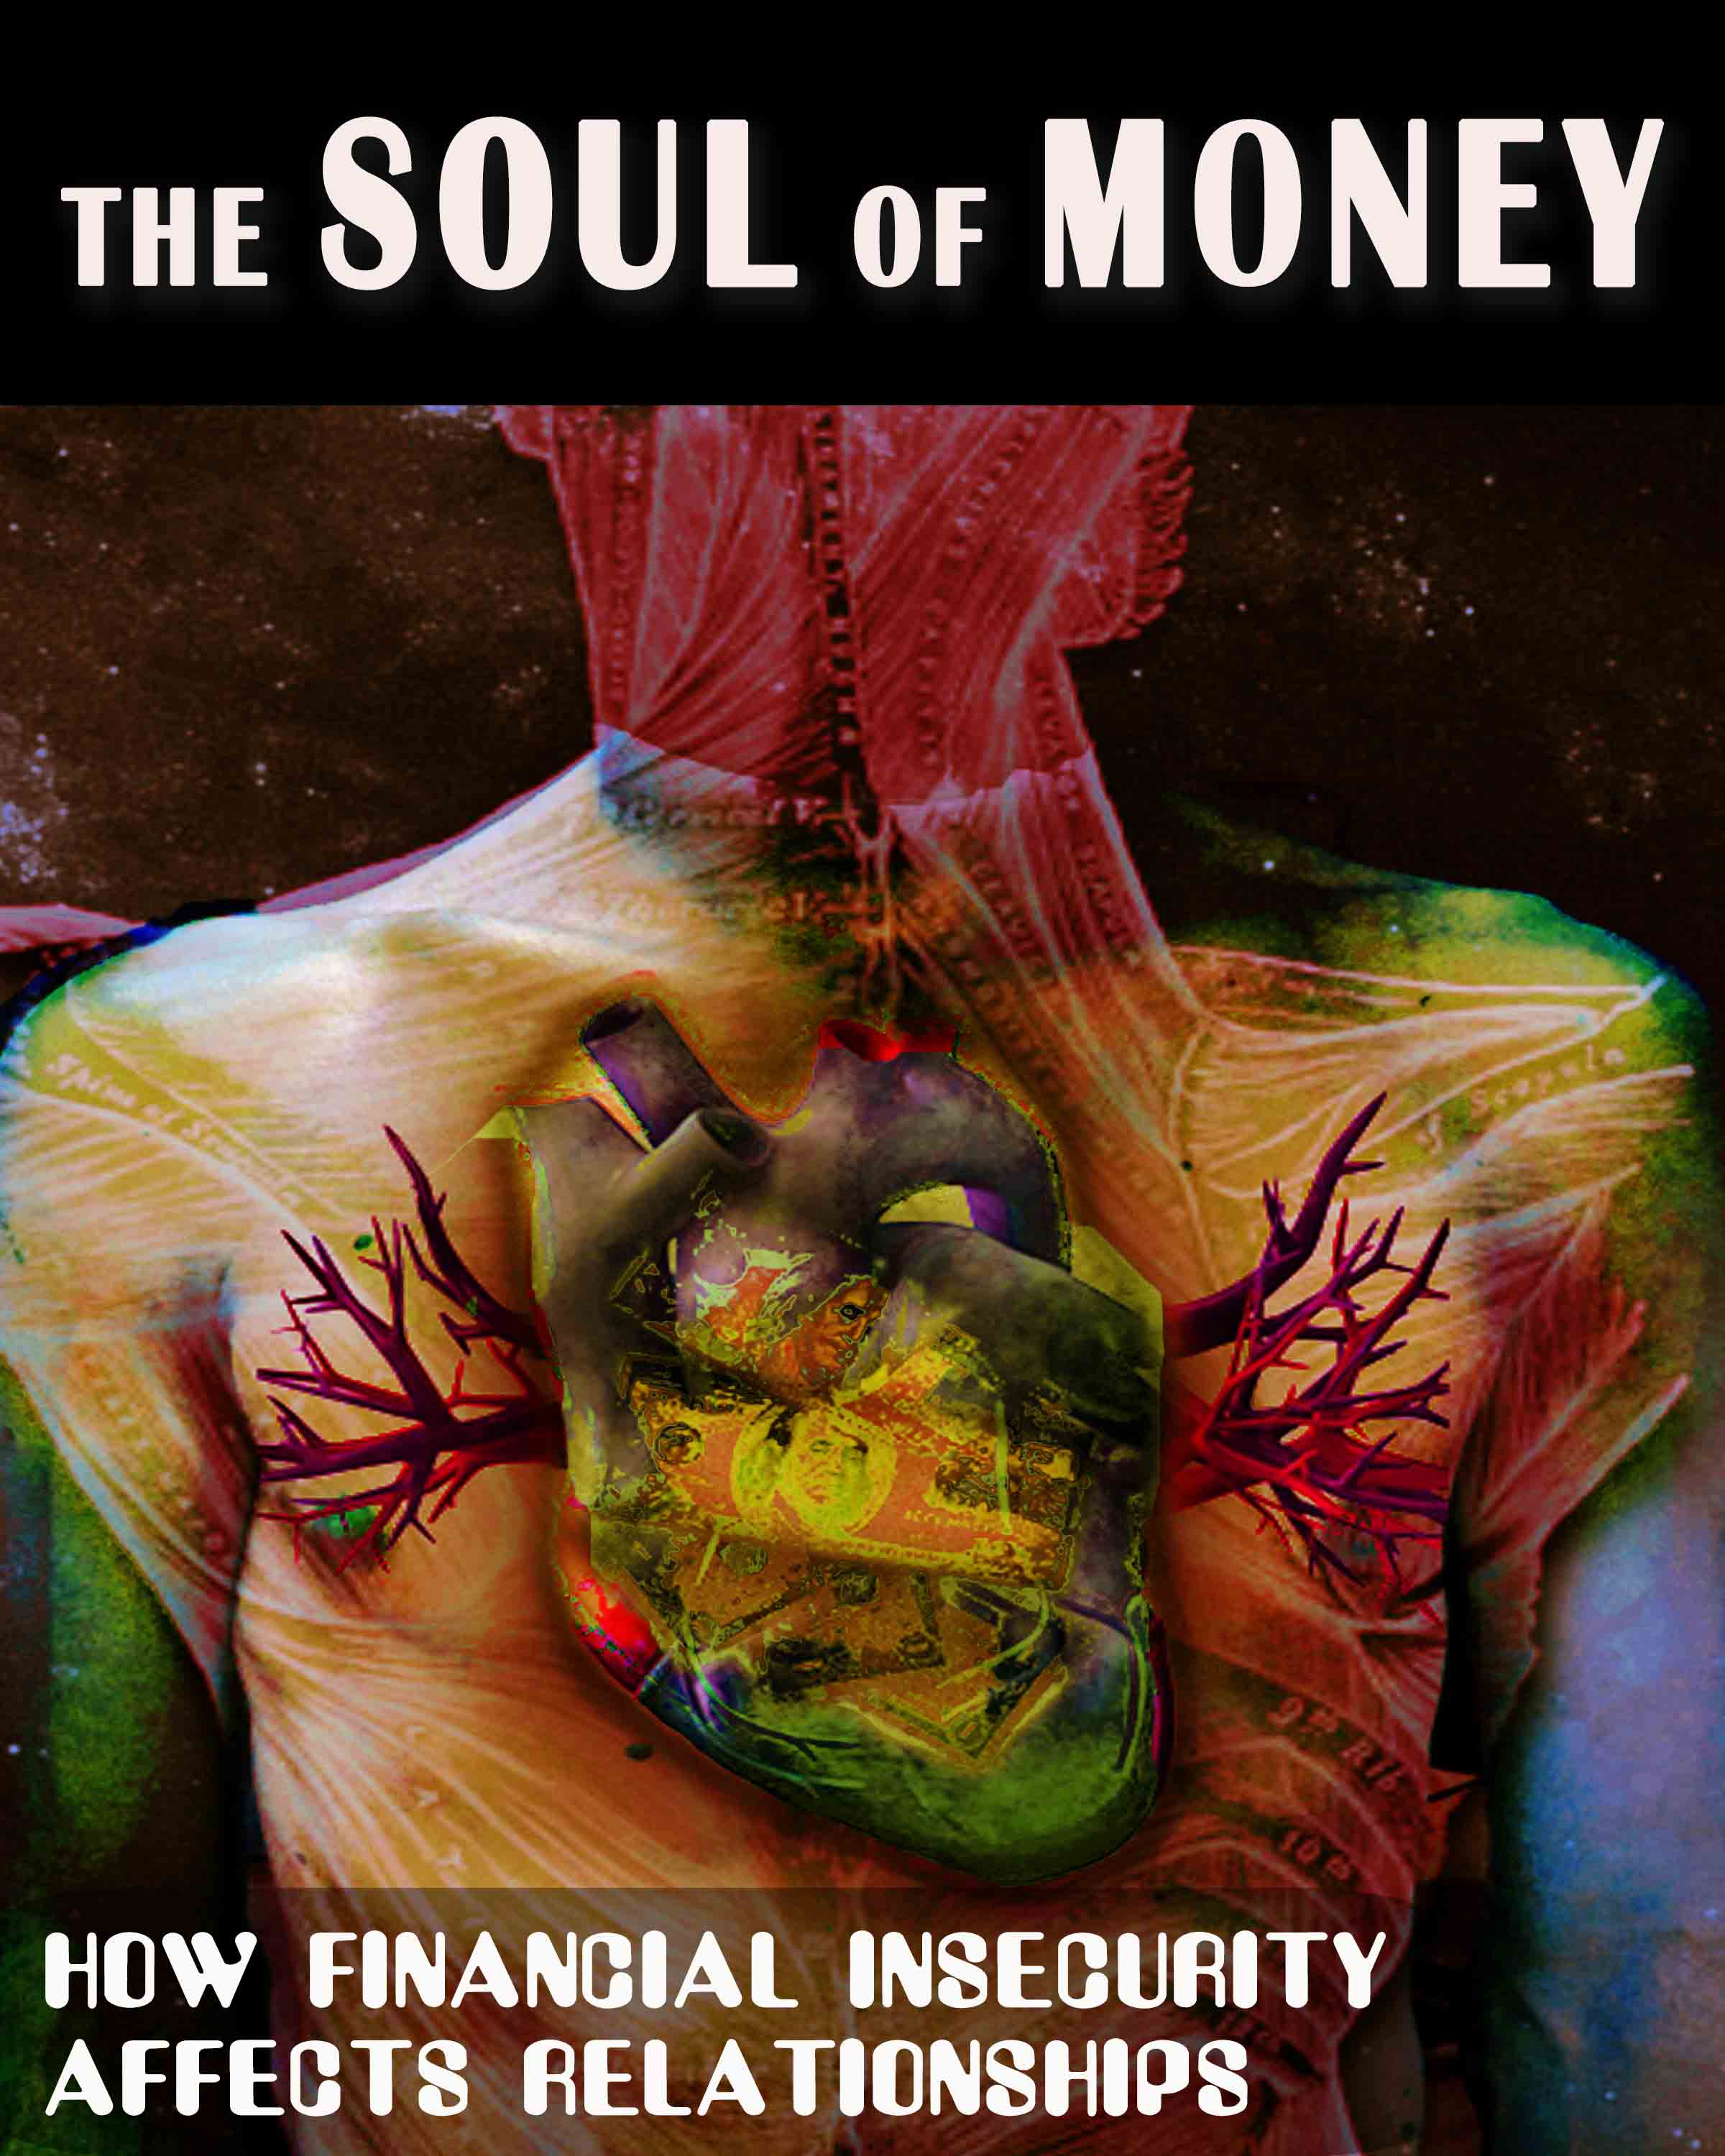 How Financial Insecurity Affects Relationships - The Soul of Money